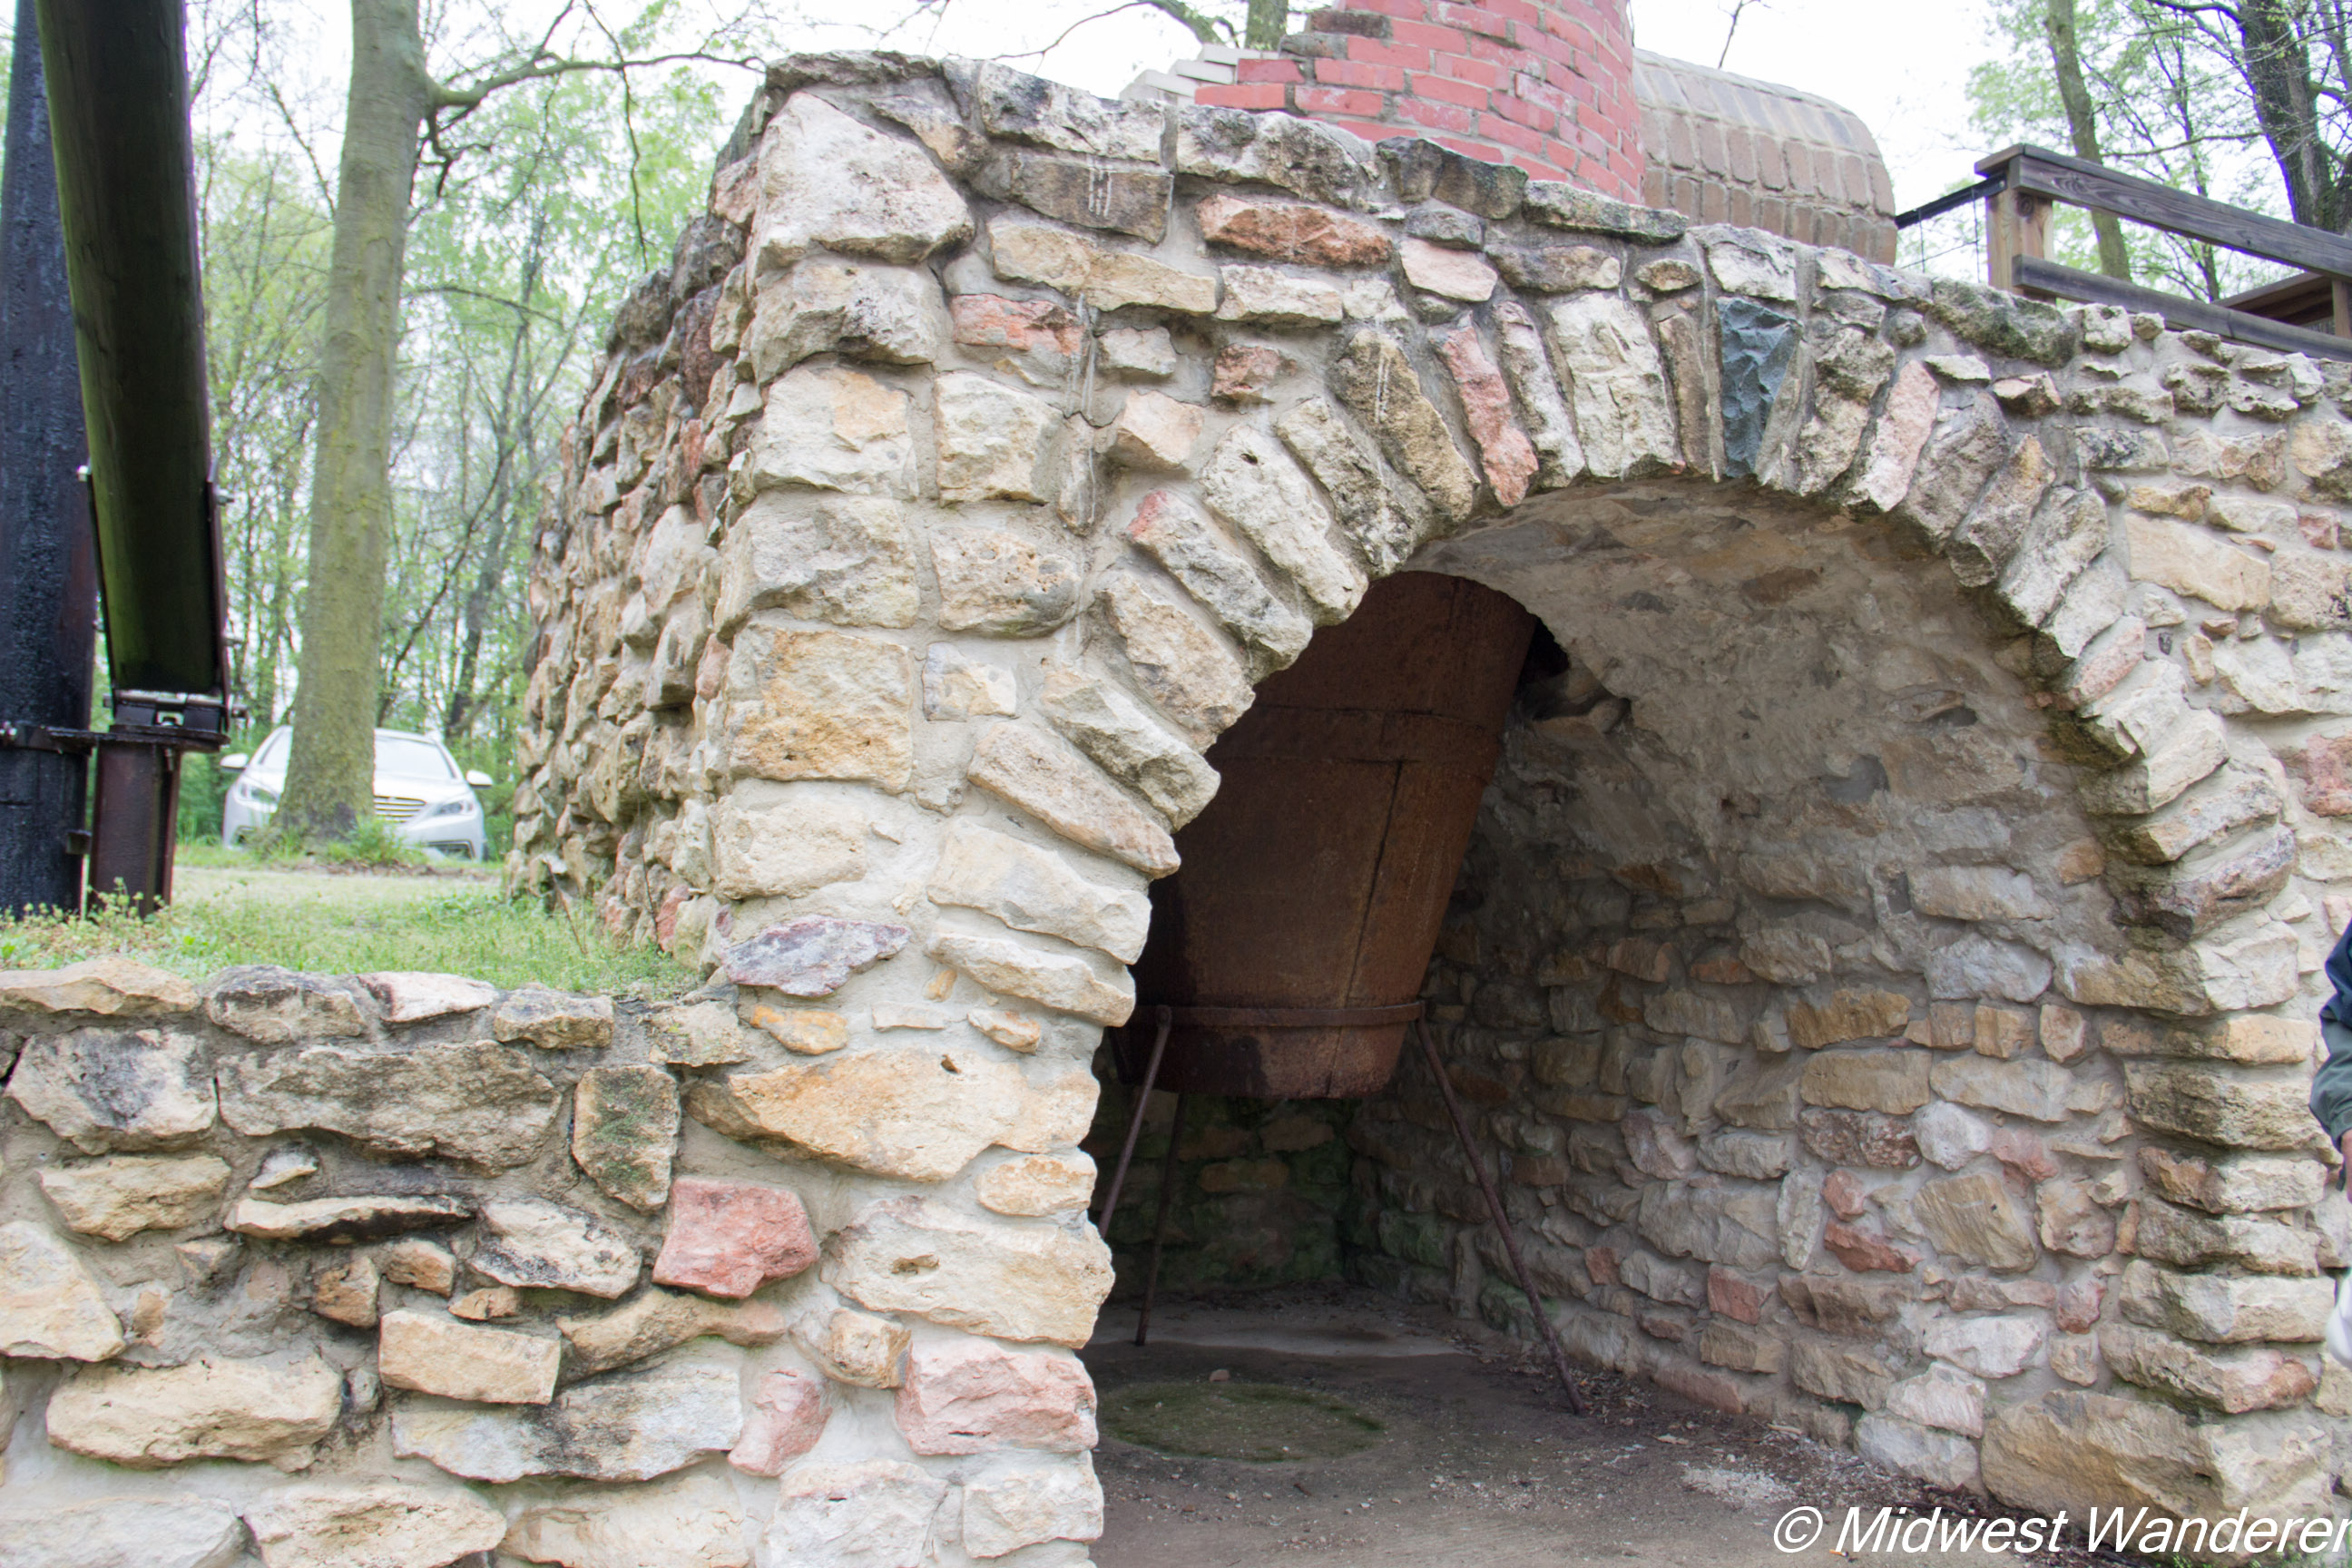 Wabash and Erie Canal kiln - 2